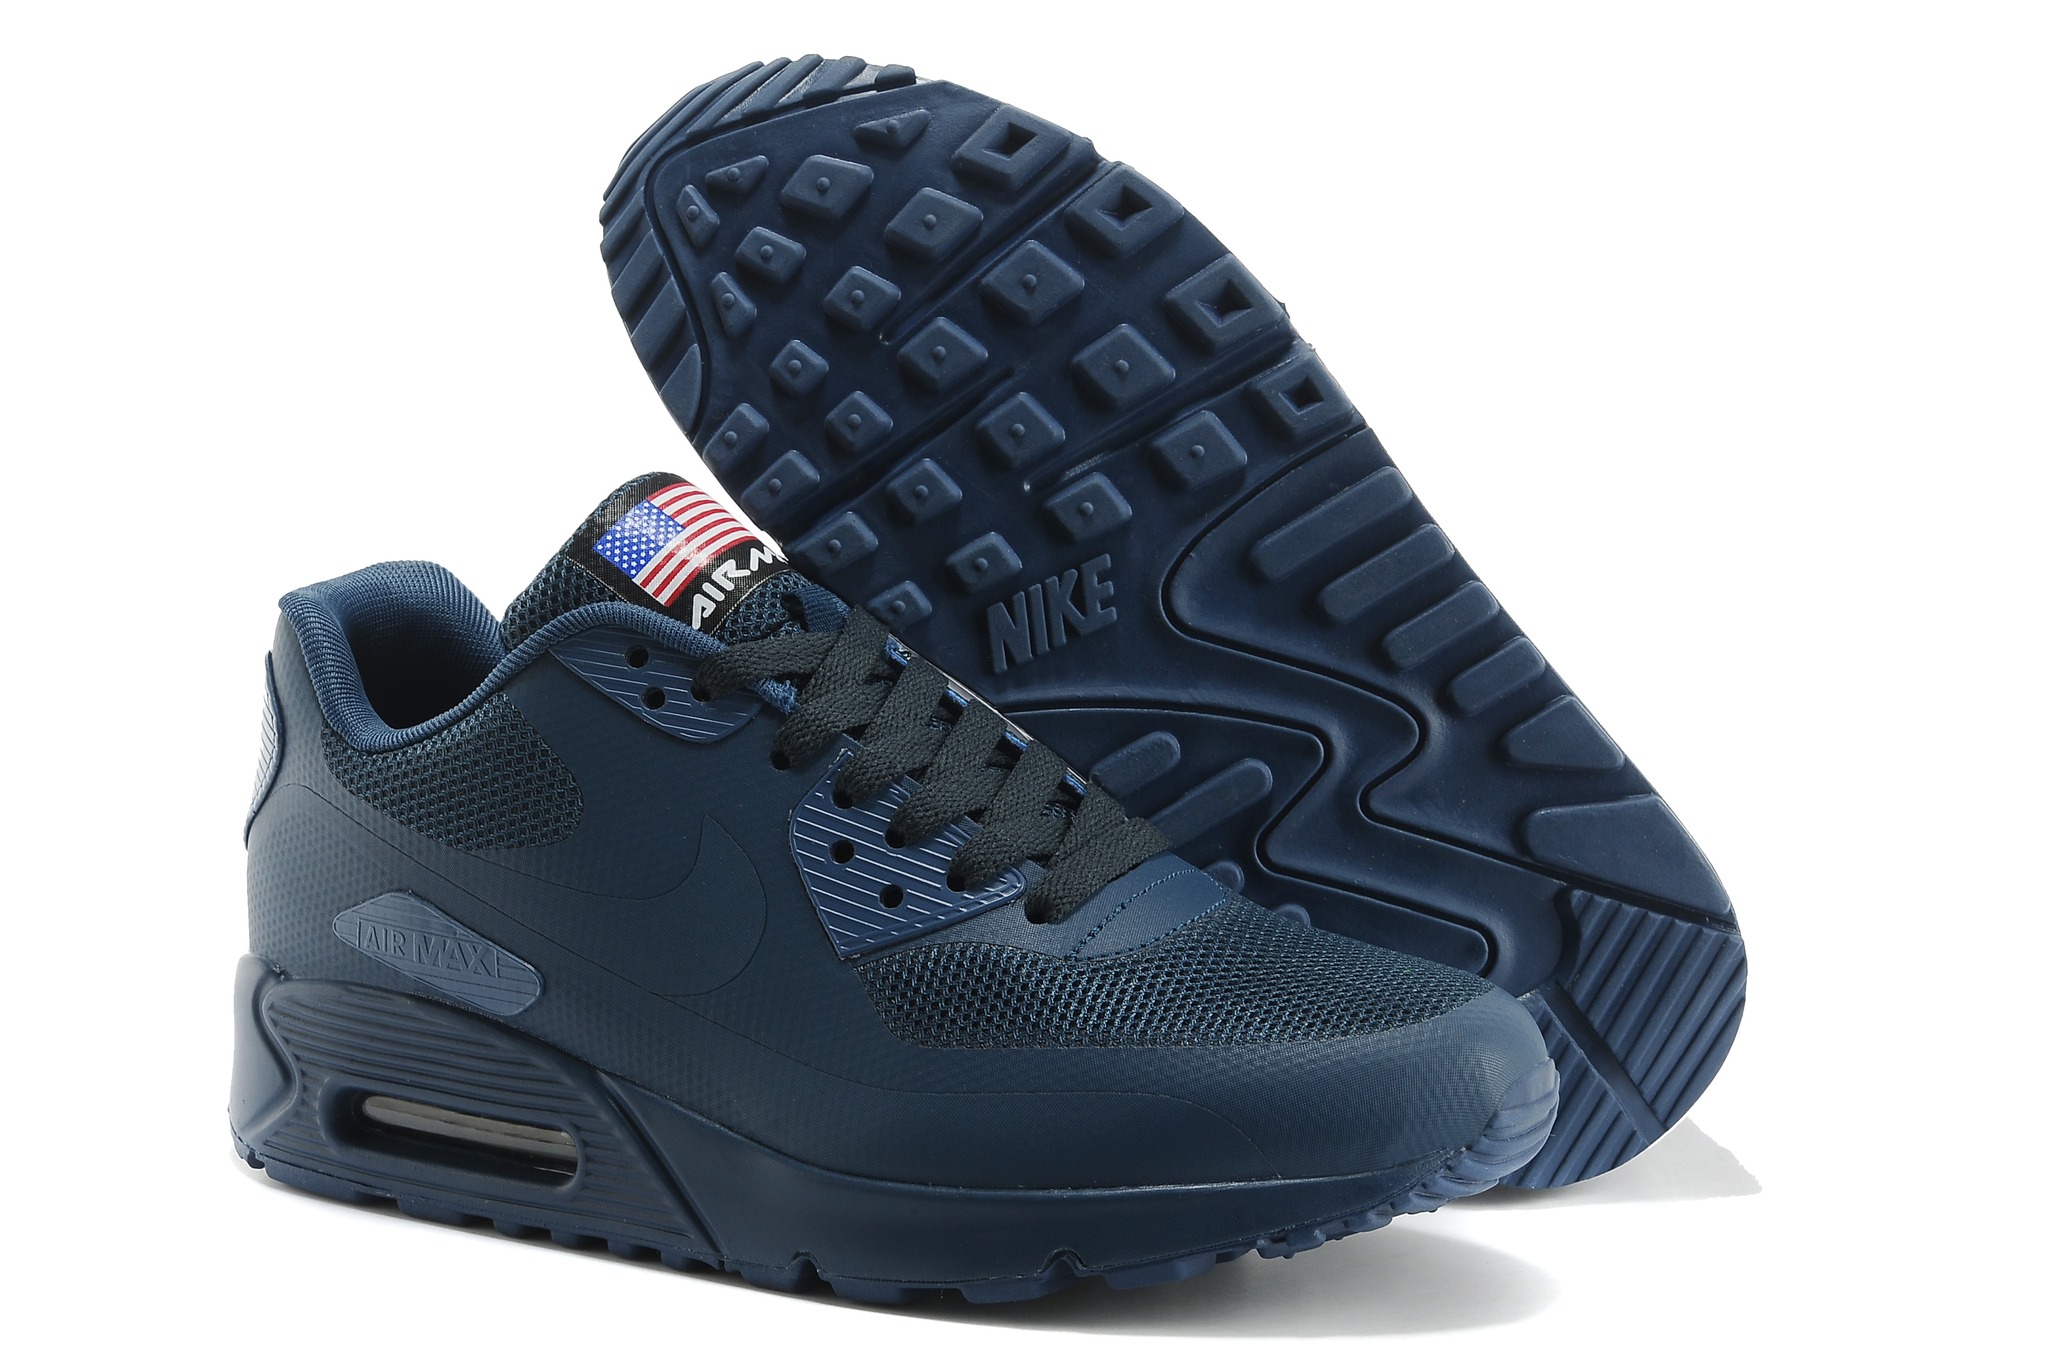 Nike_Air_Max_Independence_Day_Dark_Navy_Krossoffki.ru.jpg